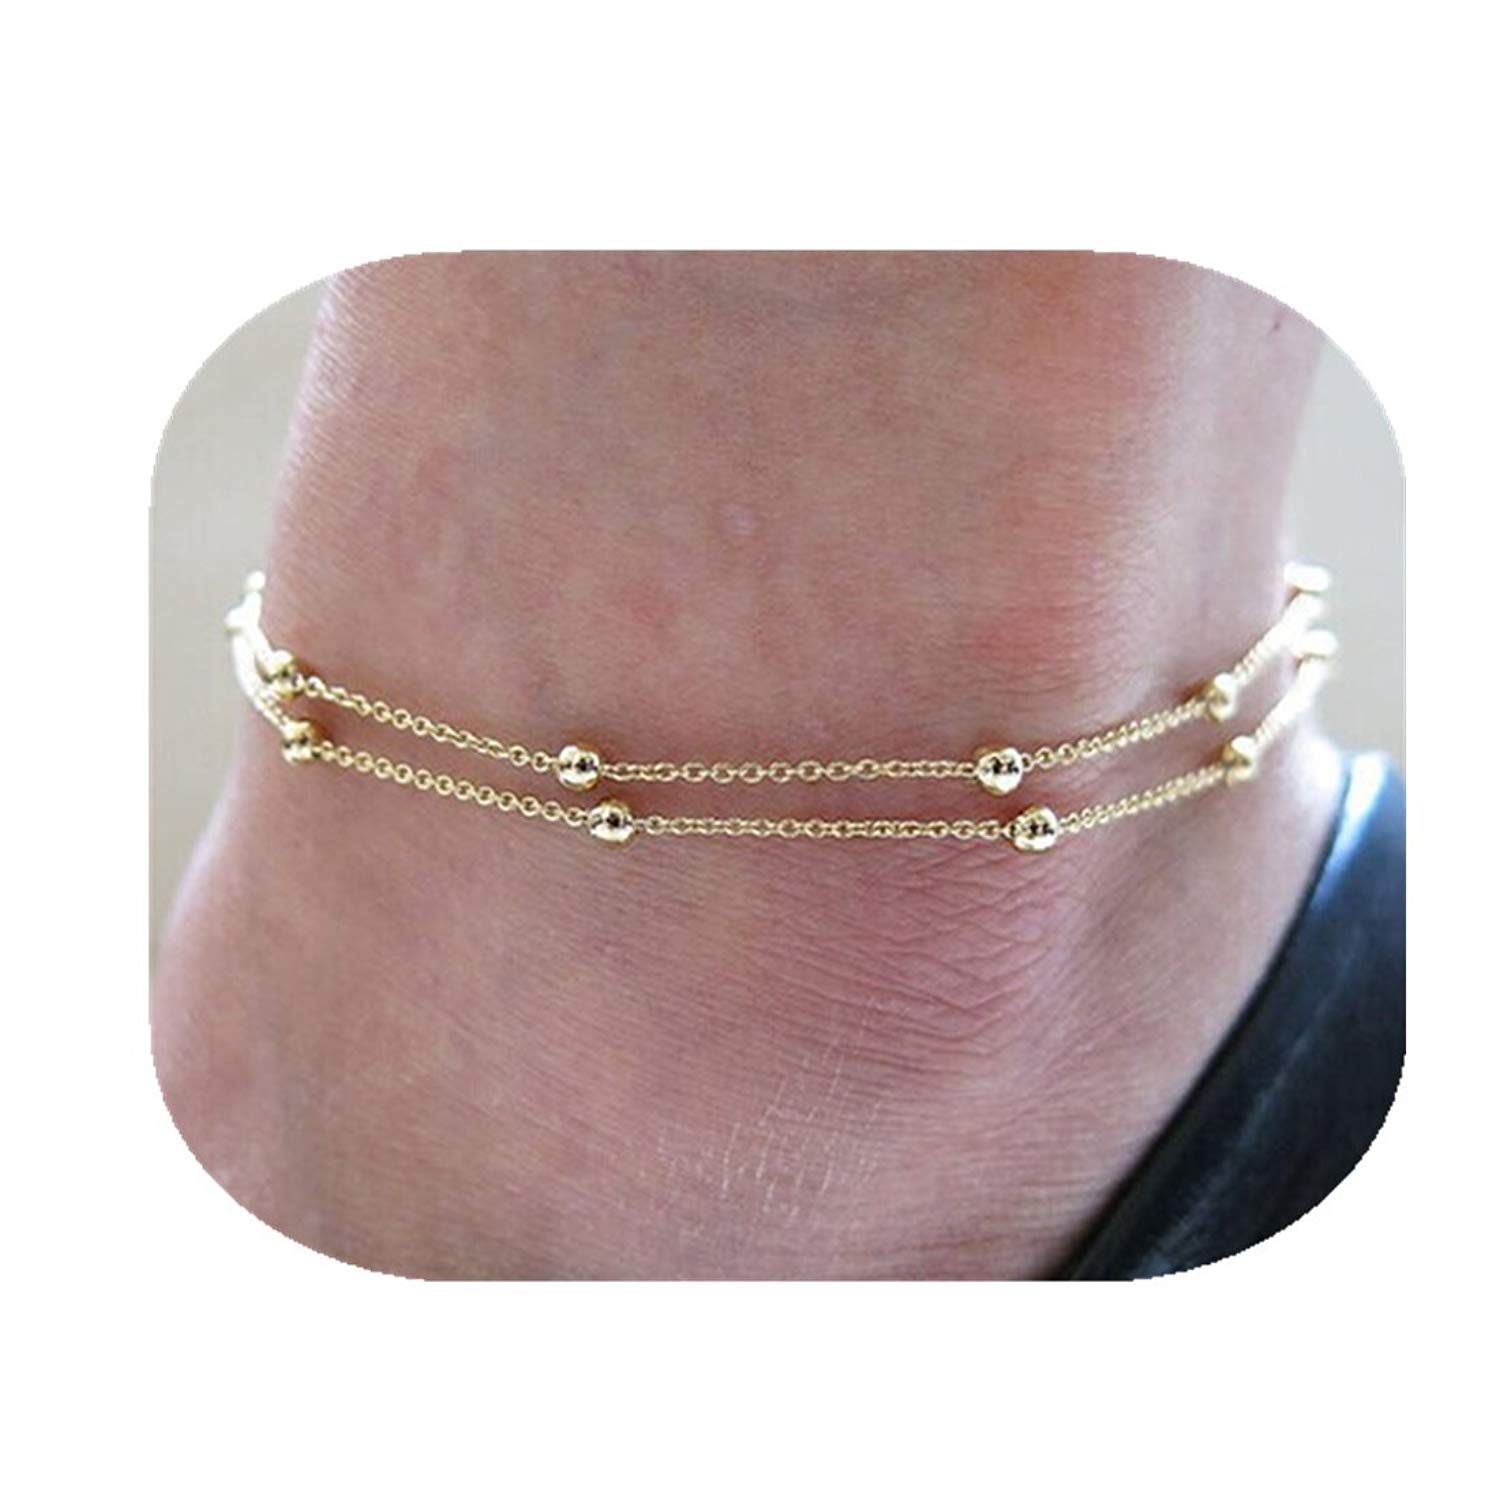 Goldplated Barefoot Beach Ankle Indian Women Bridal Wedding Chain Anklet Jewelry Modeschmuck